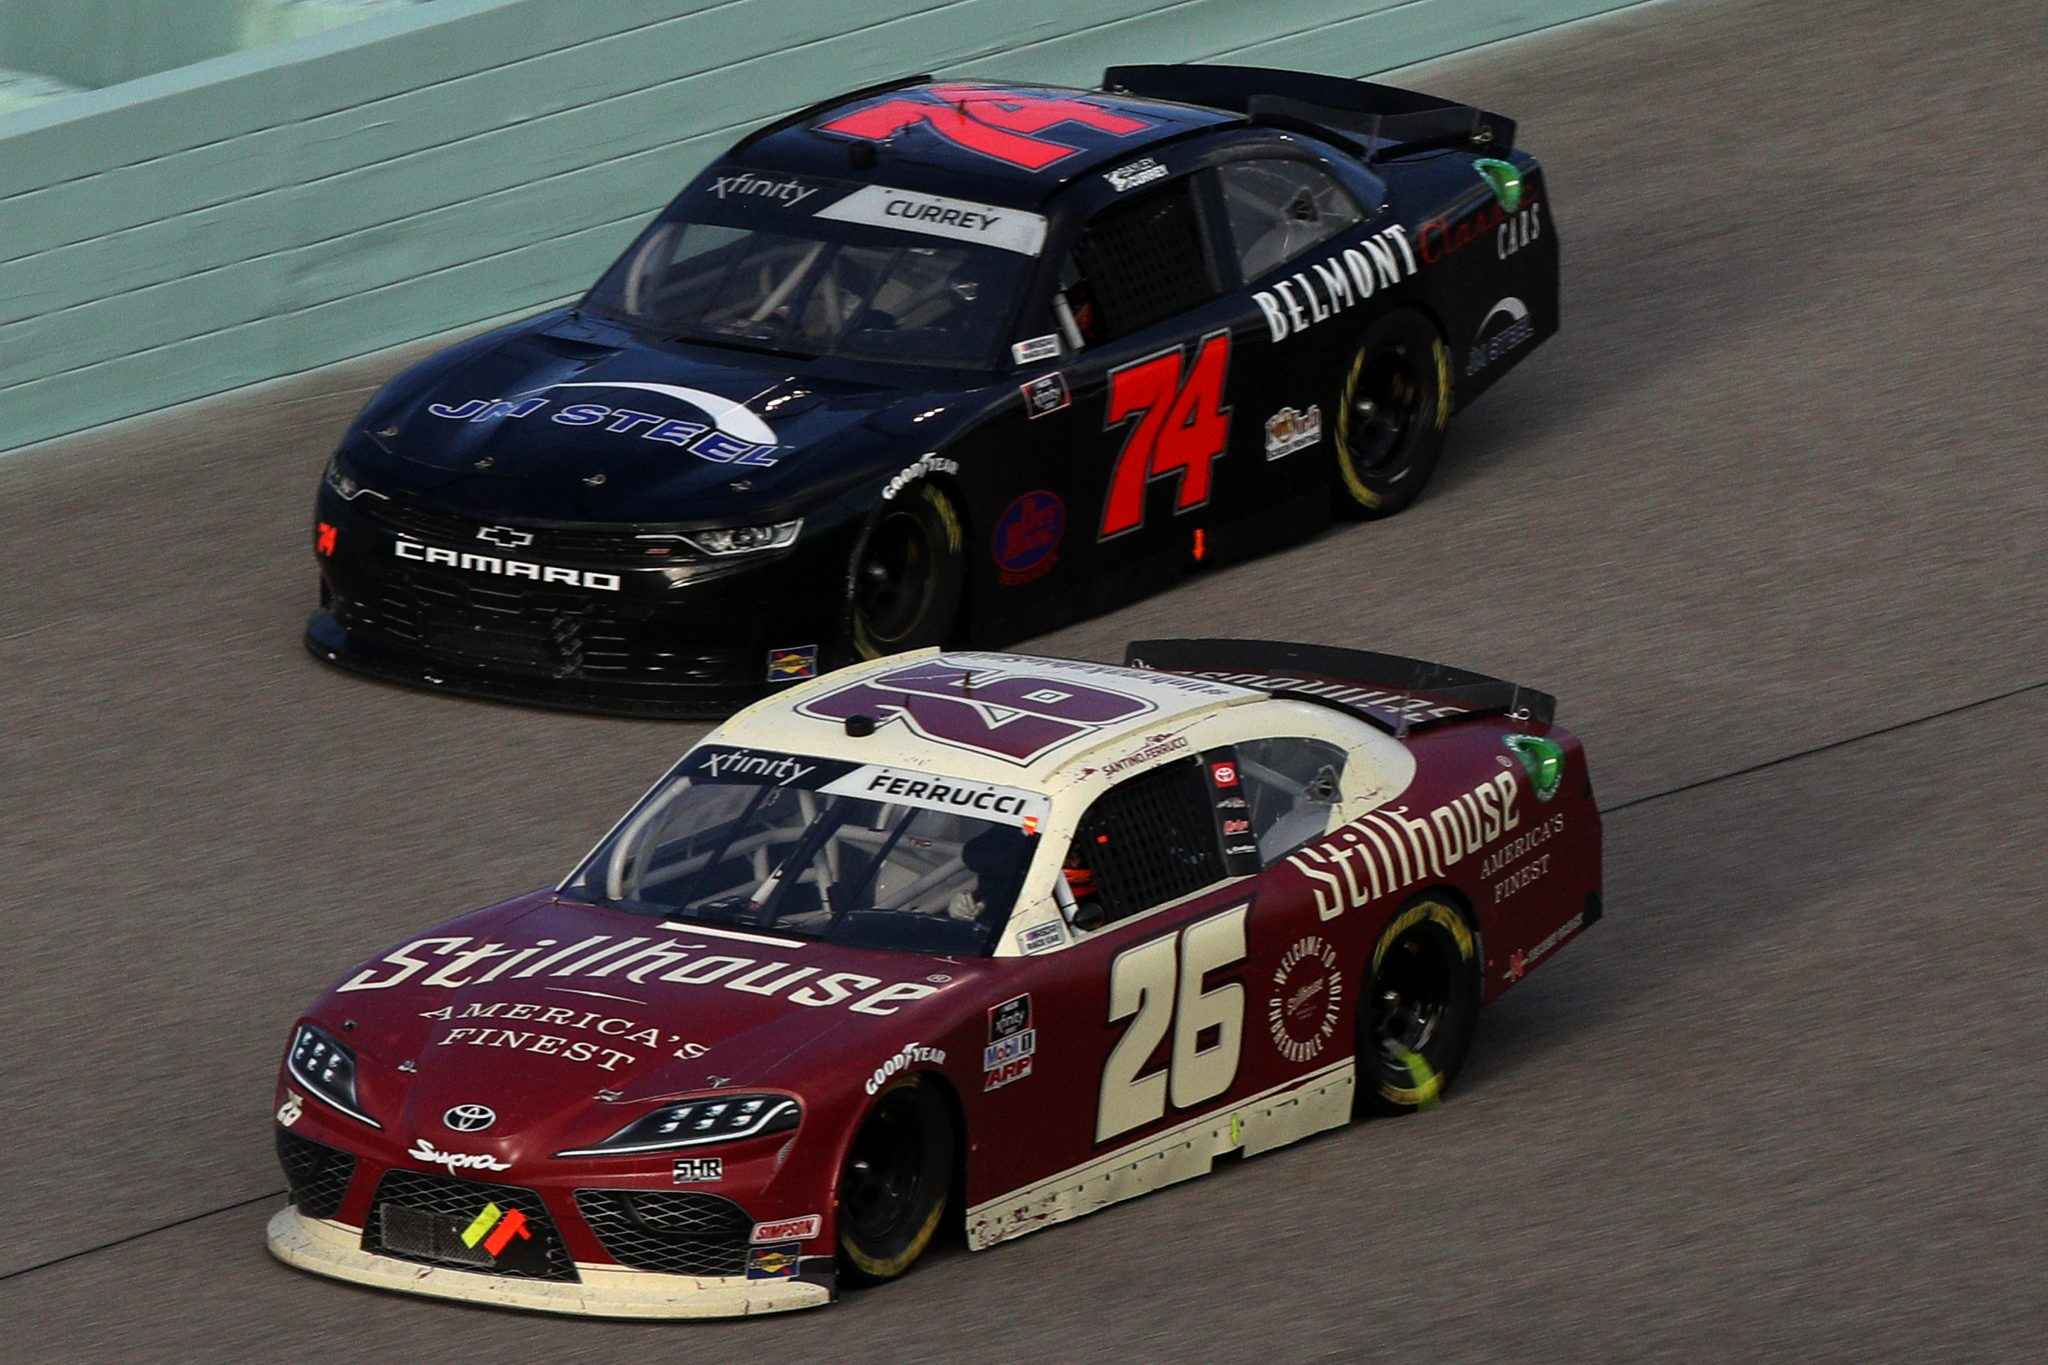 HOMESTEAD, FLORIDA - FEBRUARY 27: Santino Ferrucci, driver of the #26 Stillhouse Whiskey Toyota, and Bayley Currey, driver of the #74 Chevrolet, race during the NASCAR Xfinity Series Contender Boats 250 at Homestead-Miami Speedway on February 27, 2021 in Homestead, Florida. (Photo by Sean Gardner/Getty Images) | Getty Images